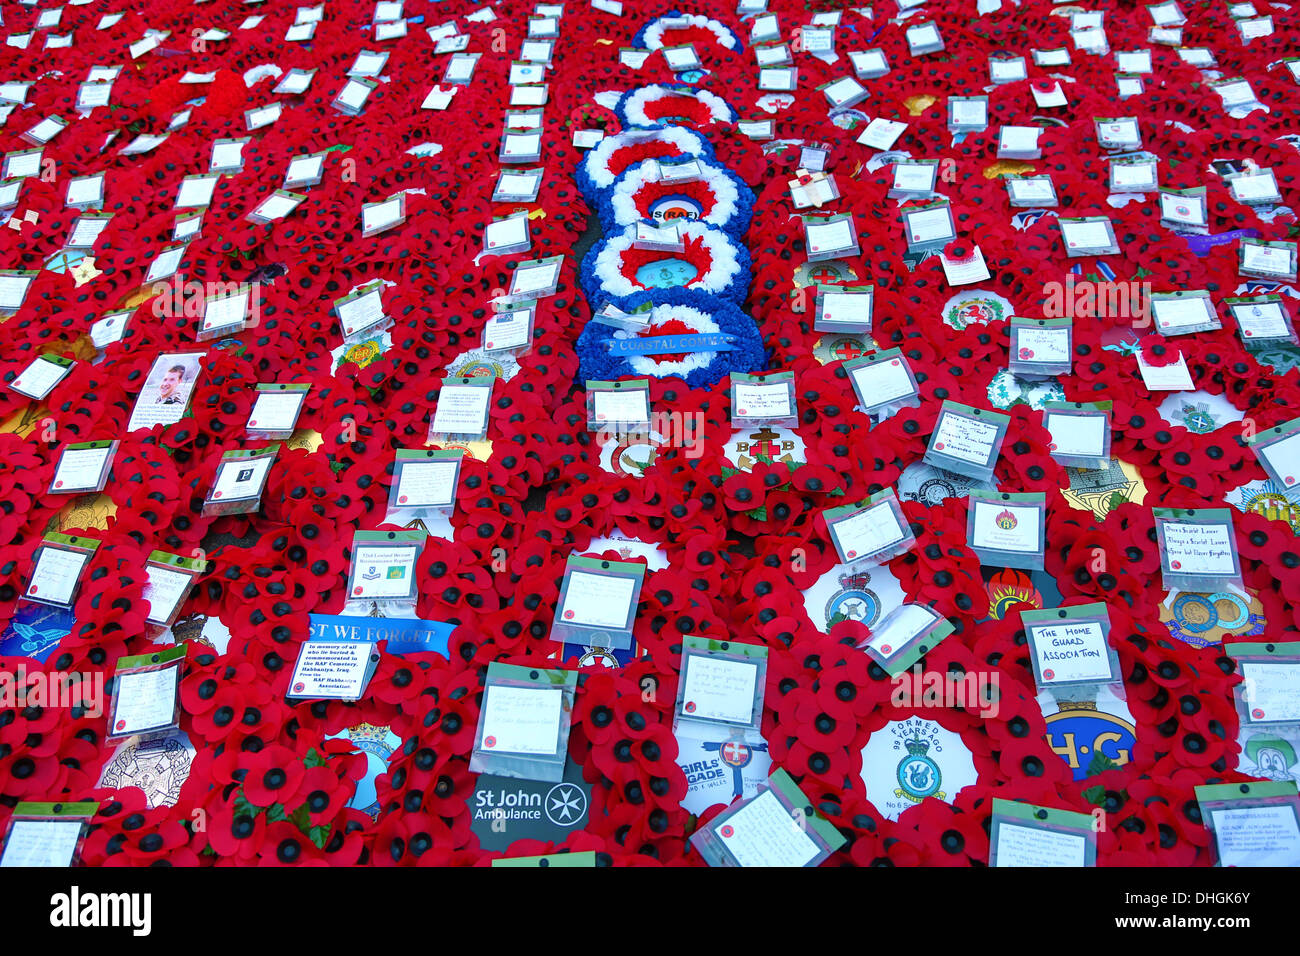 London, UK. 10th November 2013. Red Remembrance Day poppies and poppy wreaths at the Cenotaph on Remembrance Sunday, London, England - Stock Image